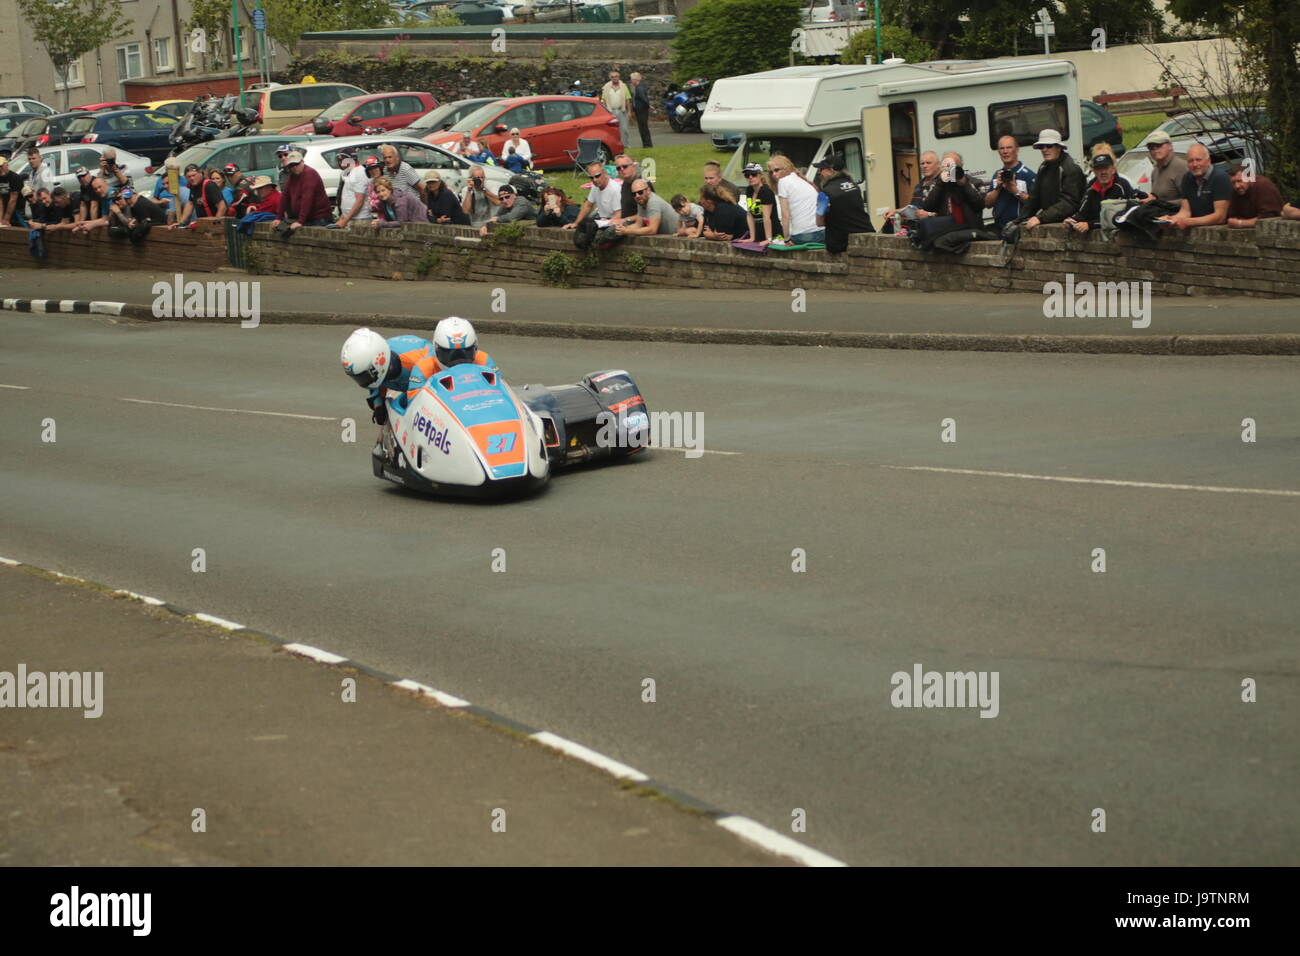 Isle of Man TT Races, Sidecar Qualifying Practice Race, Saturday 3 June 2017. Sidecar qualifying session. Number - Stock Image